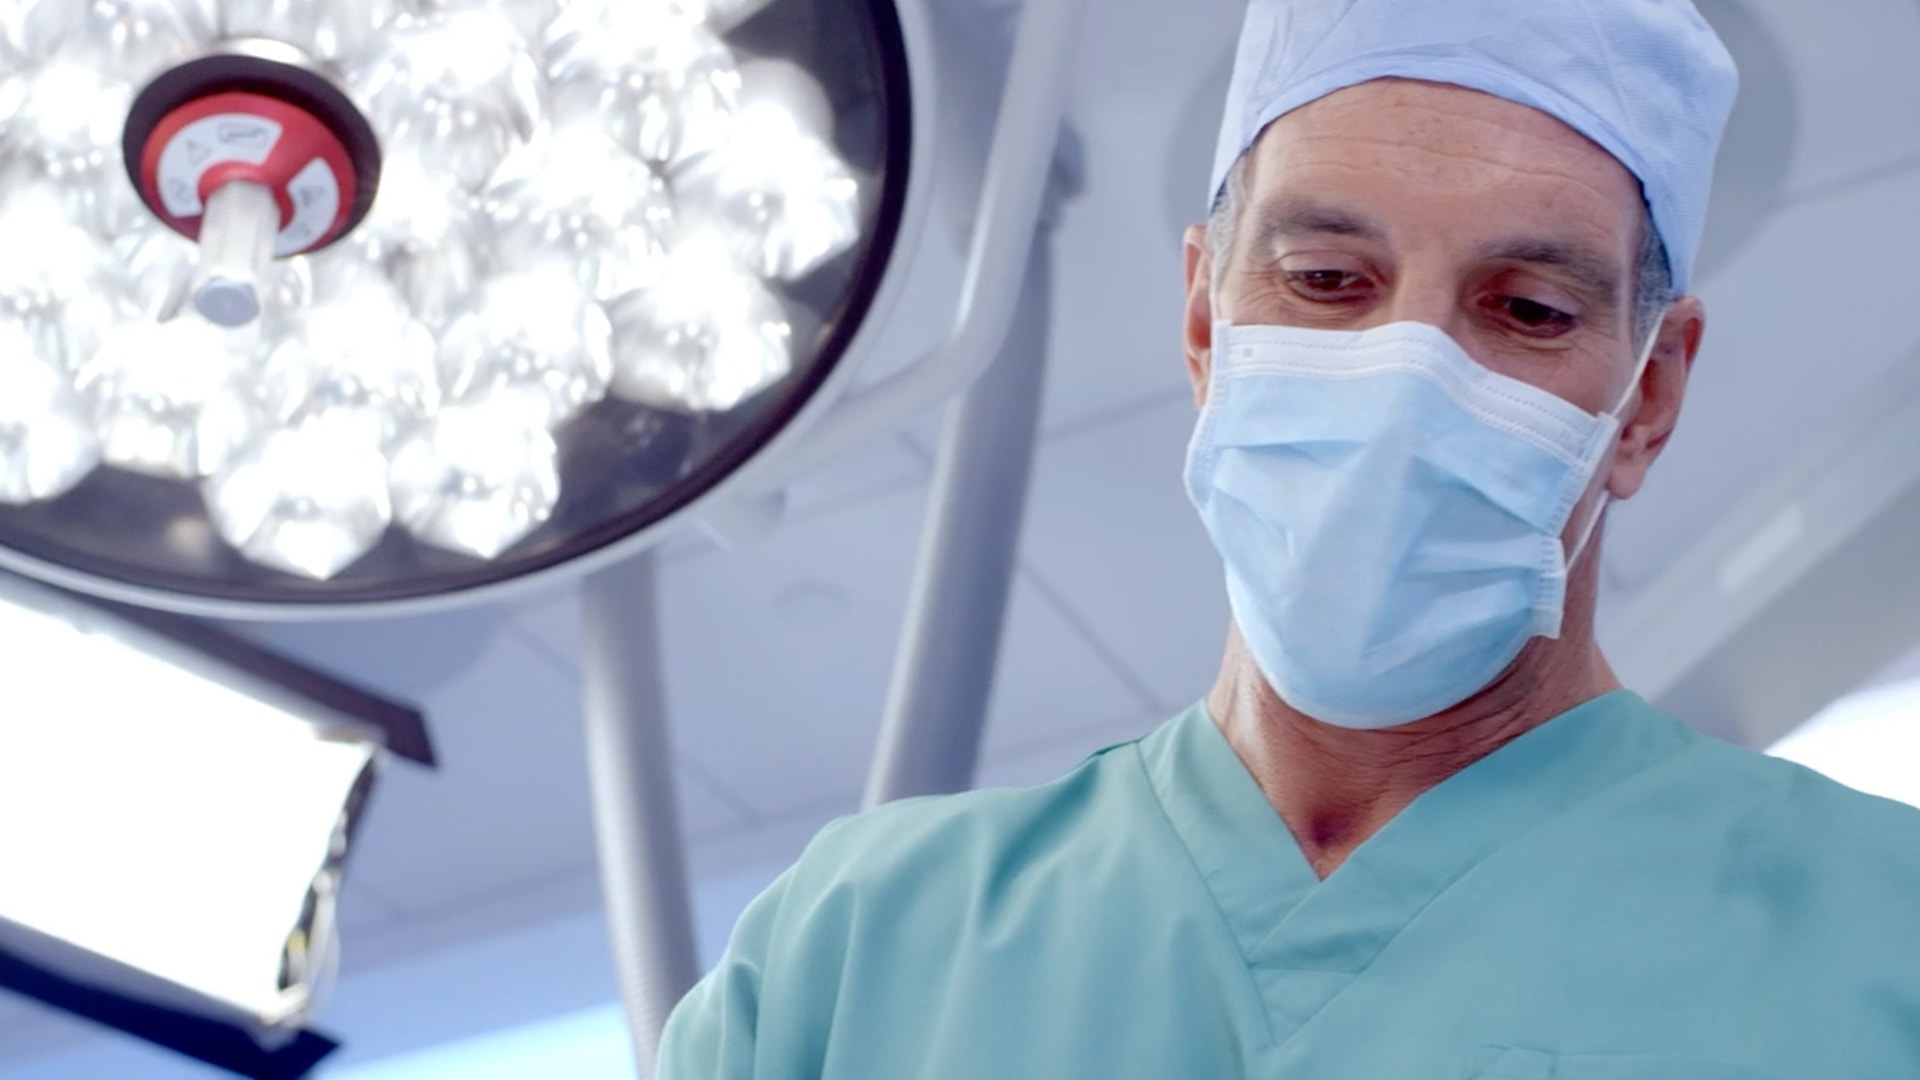 A close up of a surgeons face. He is wearing the cap, mouth guard, and scrubs. The medical light is next to him.